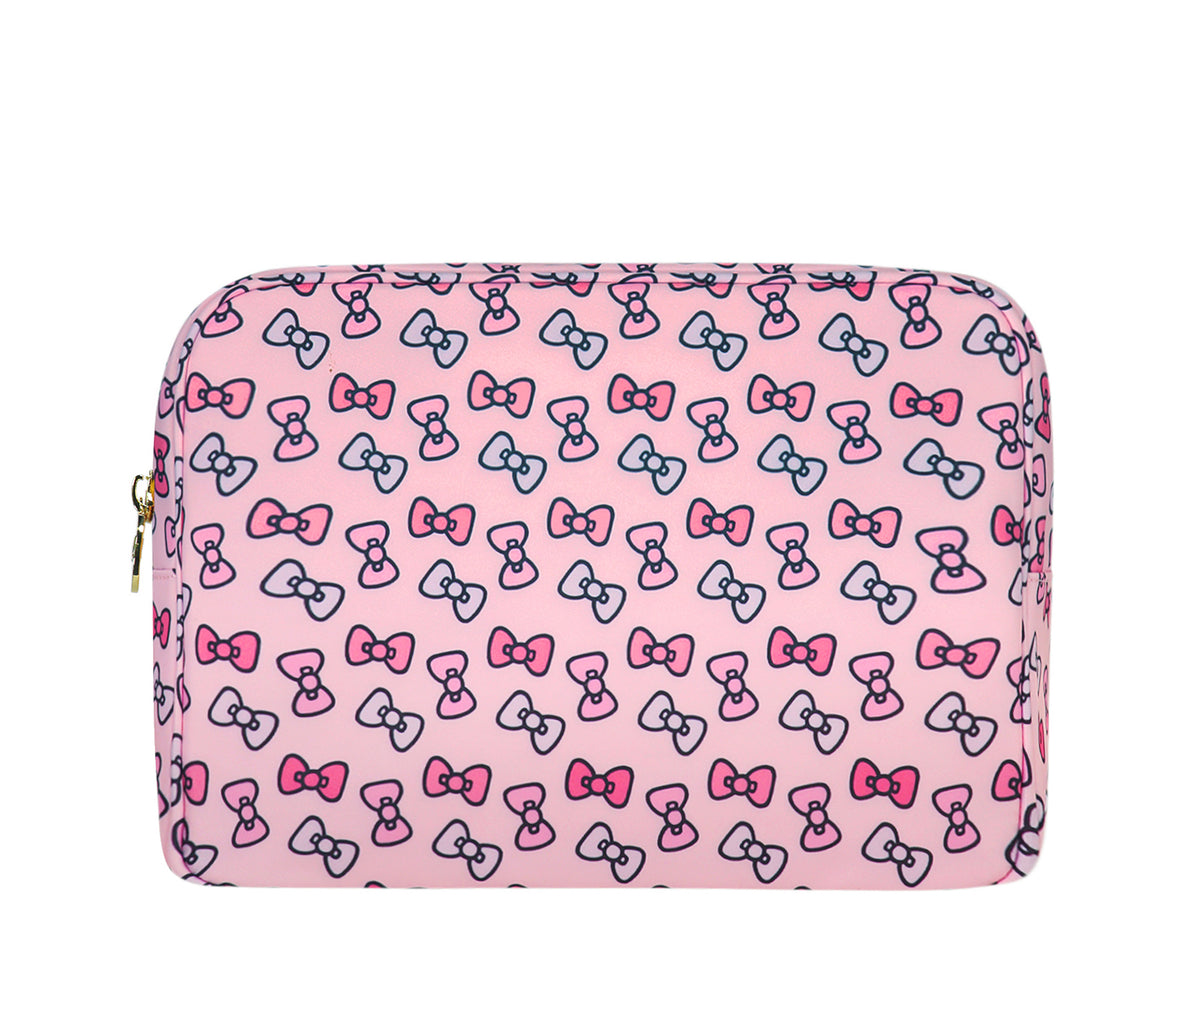 Stoney Clover Lane x Hello Kitty Bows Large Pouch